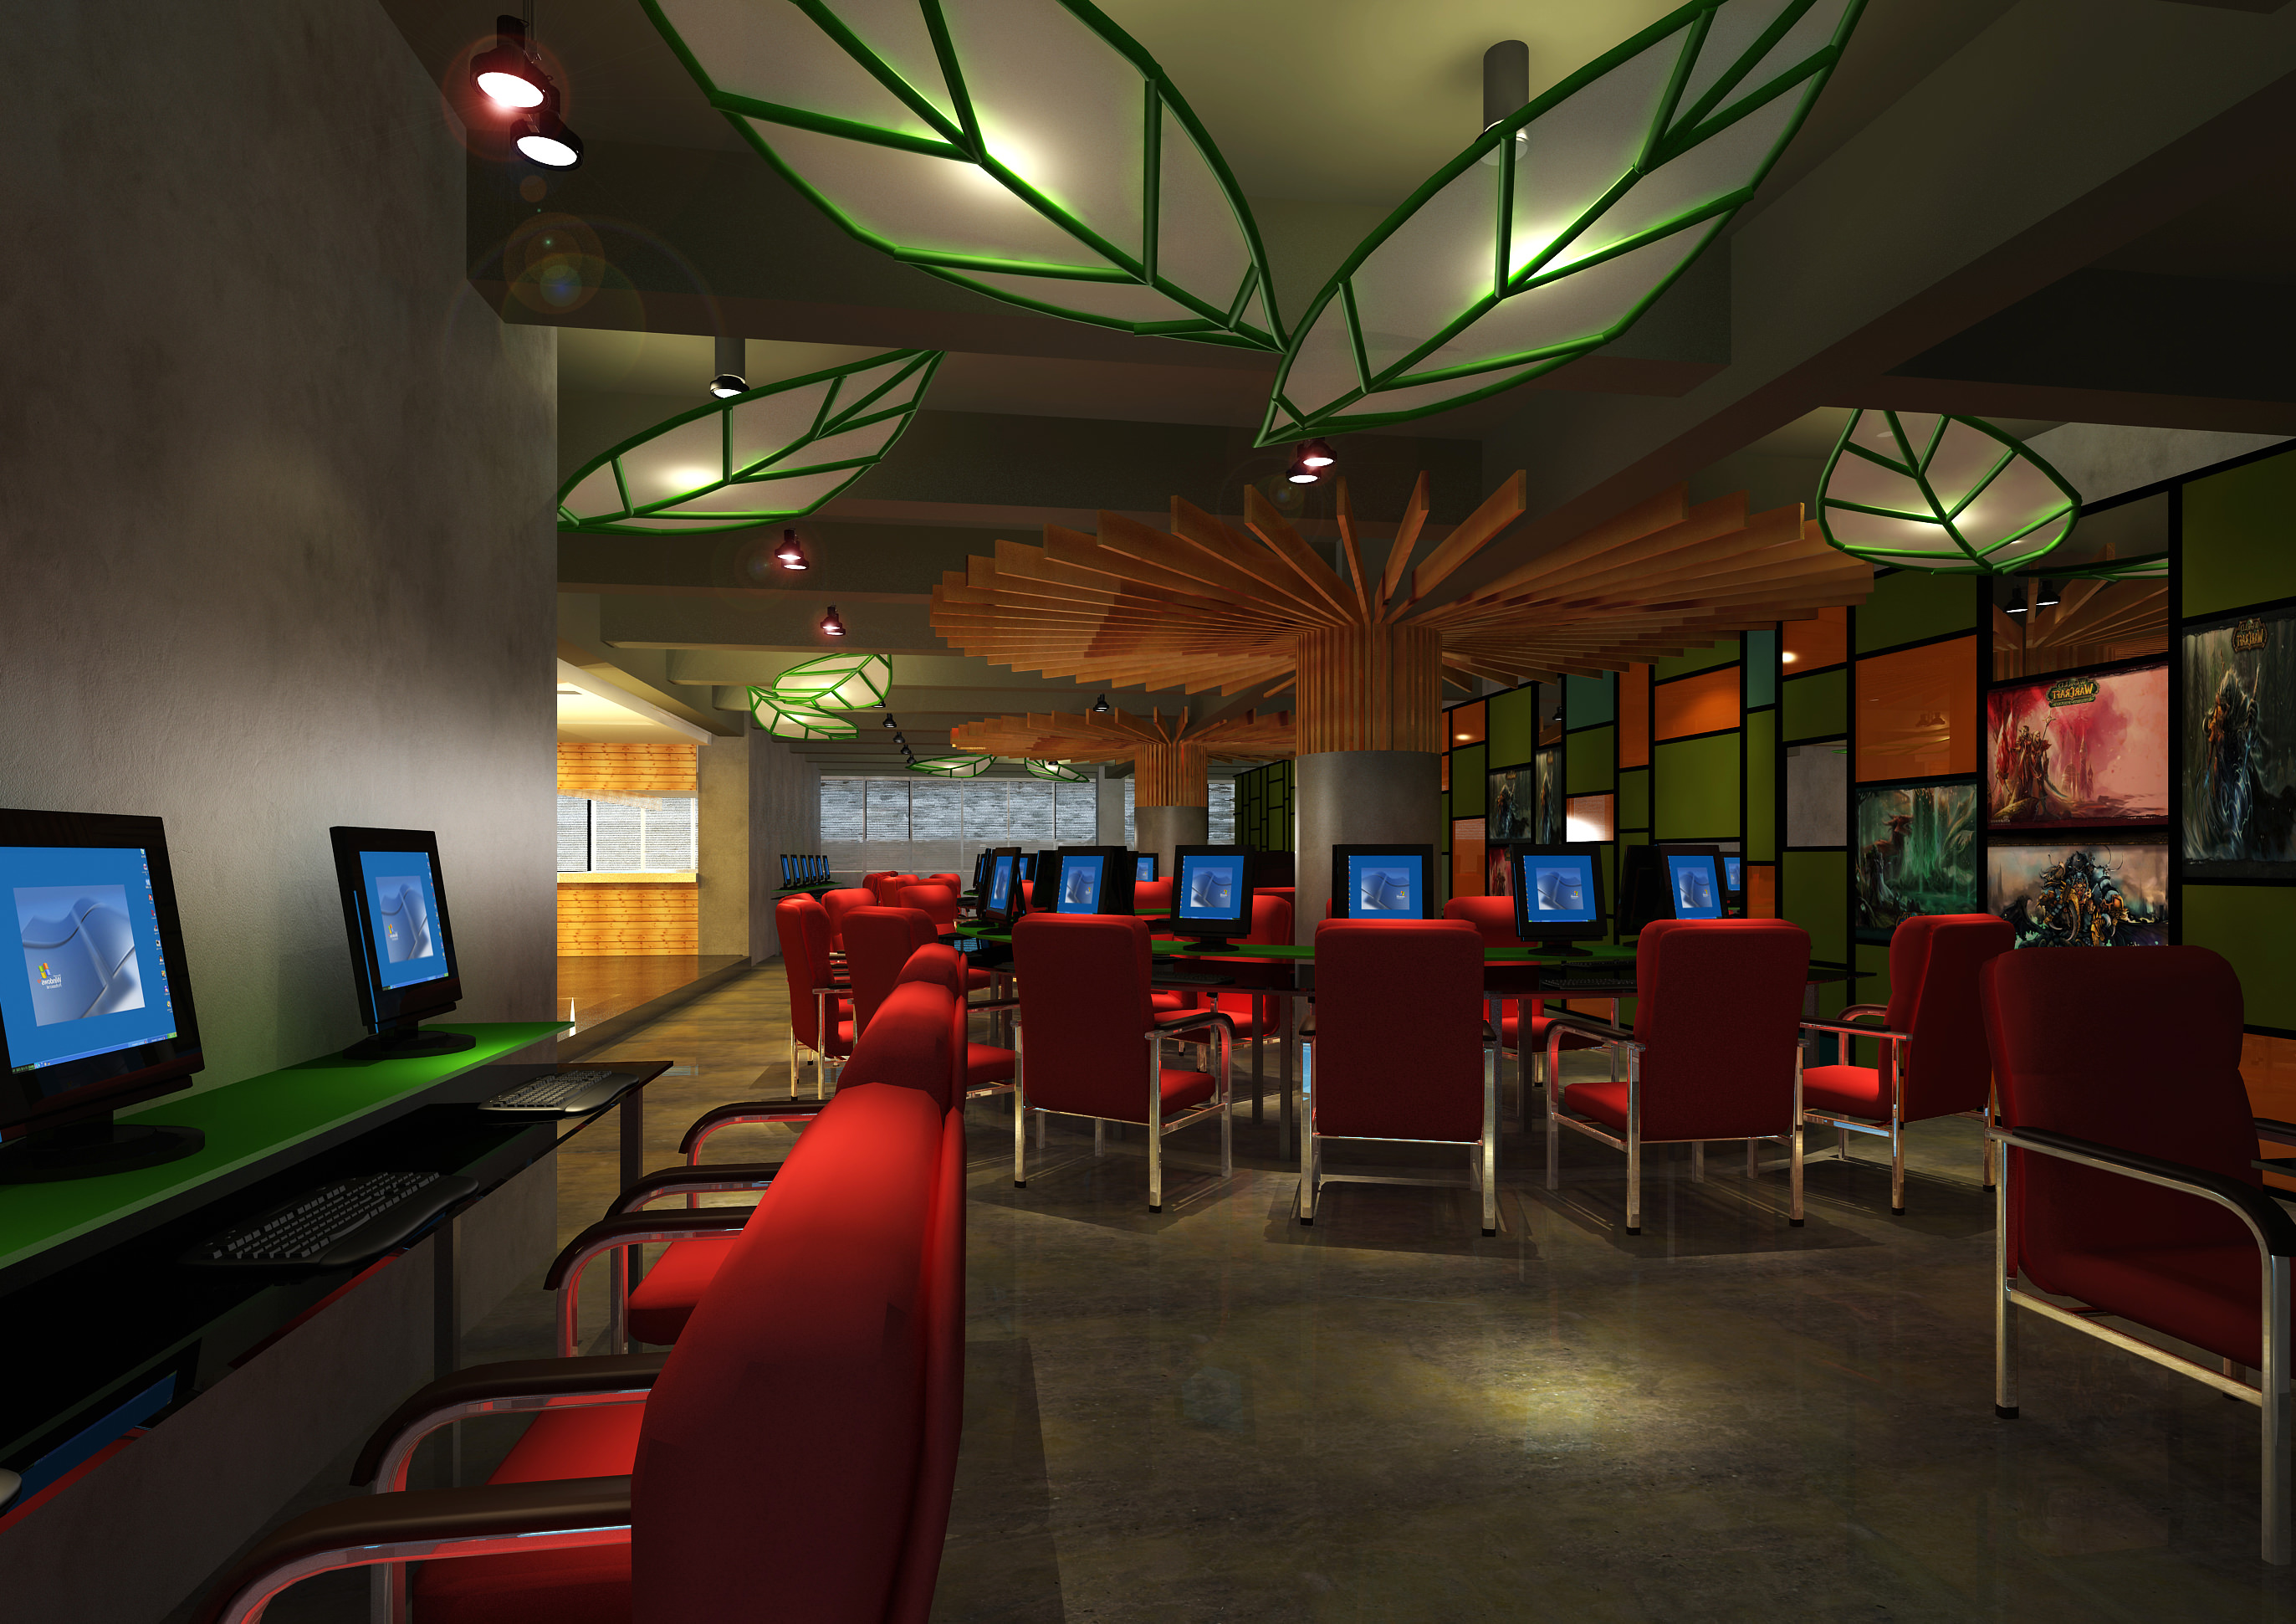 Cyber cafe with decor interior 3d model max for 3d decoration models